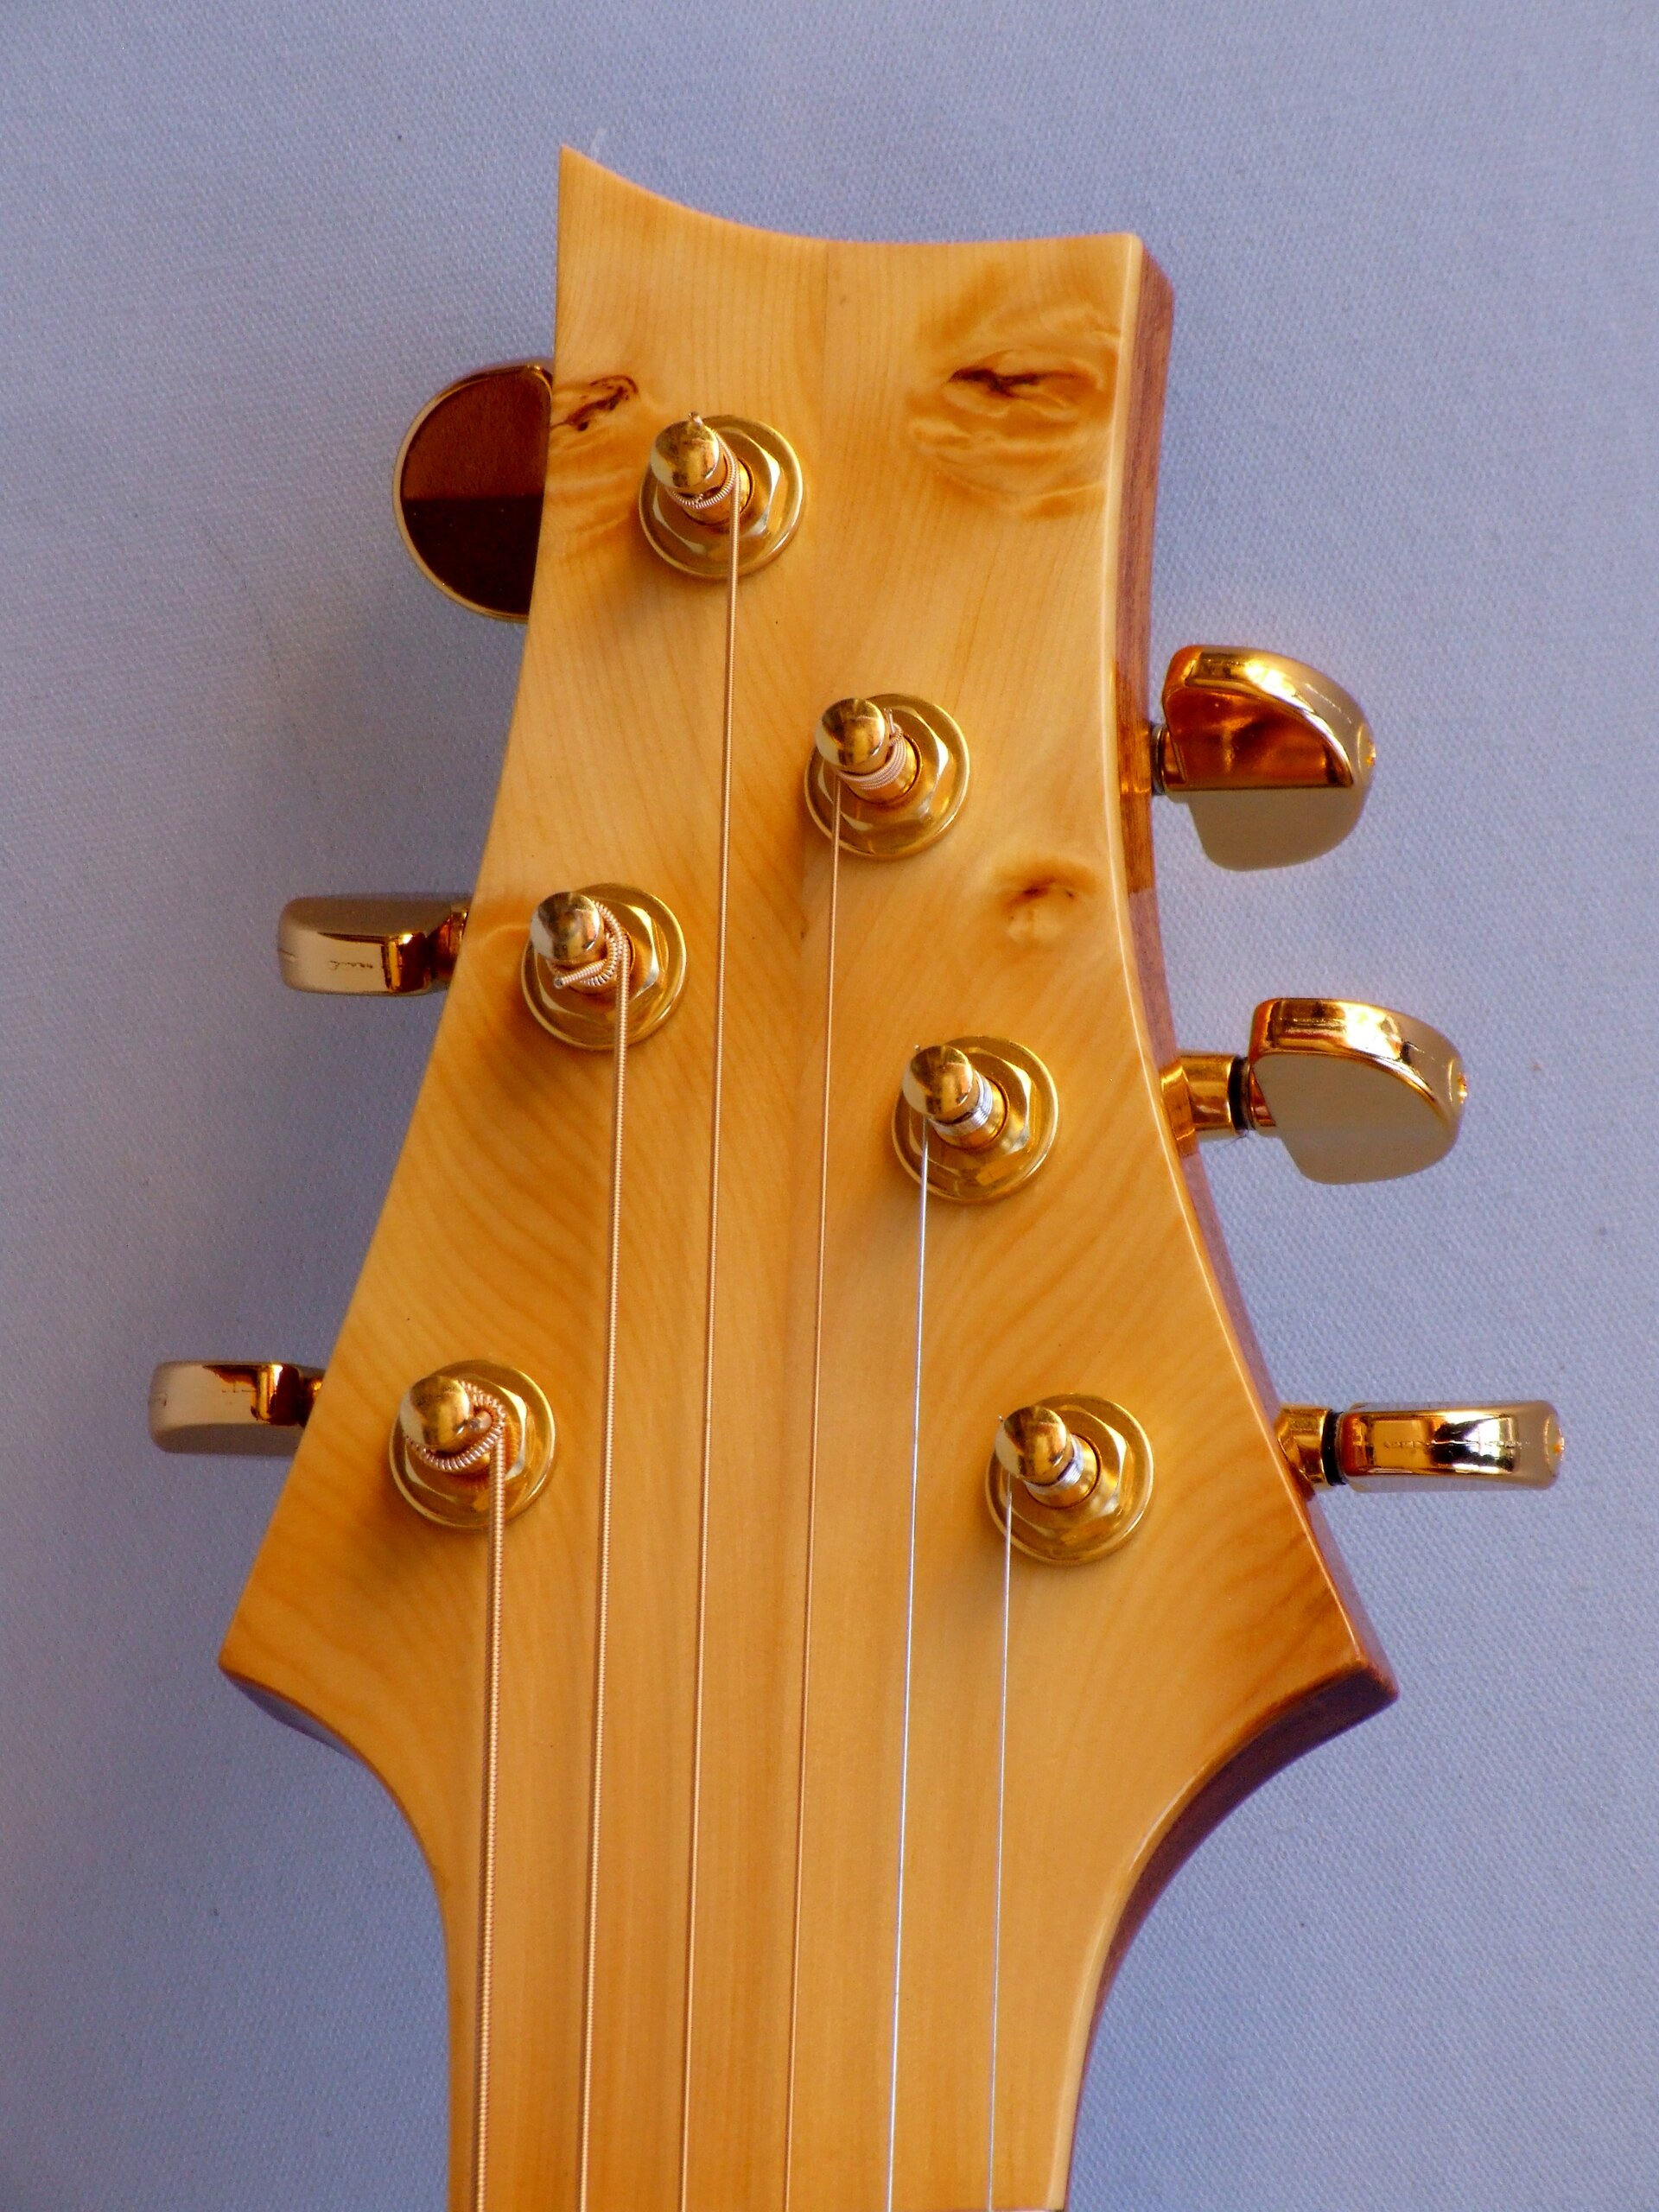 Huon pine headstock facing on The Shed guitar